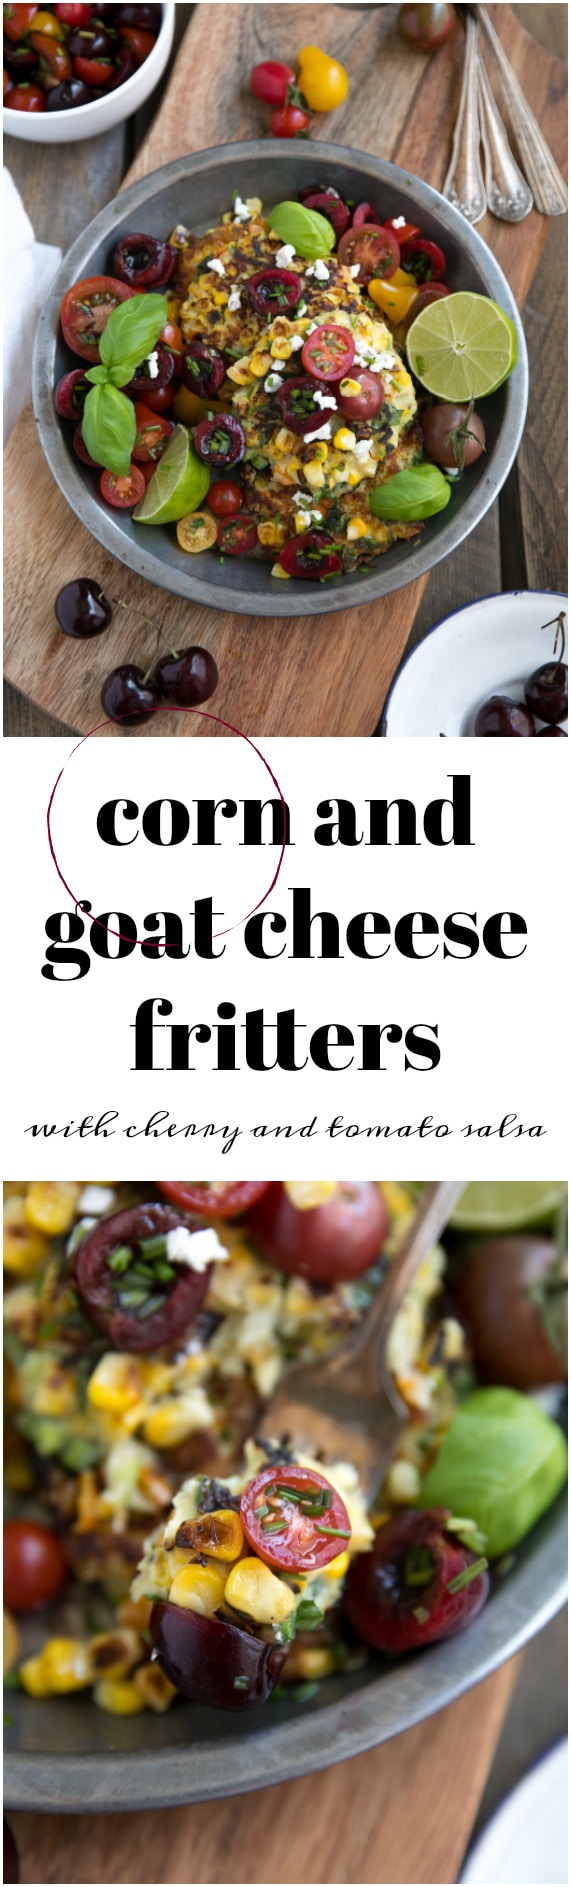 Corn and Goat Cheese Fritters with Cherry and Tomato Salsa via @theforkedspoon #corn #fritters #cherry #snacks #salsa #goatcheese #easyrecipe